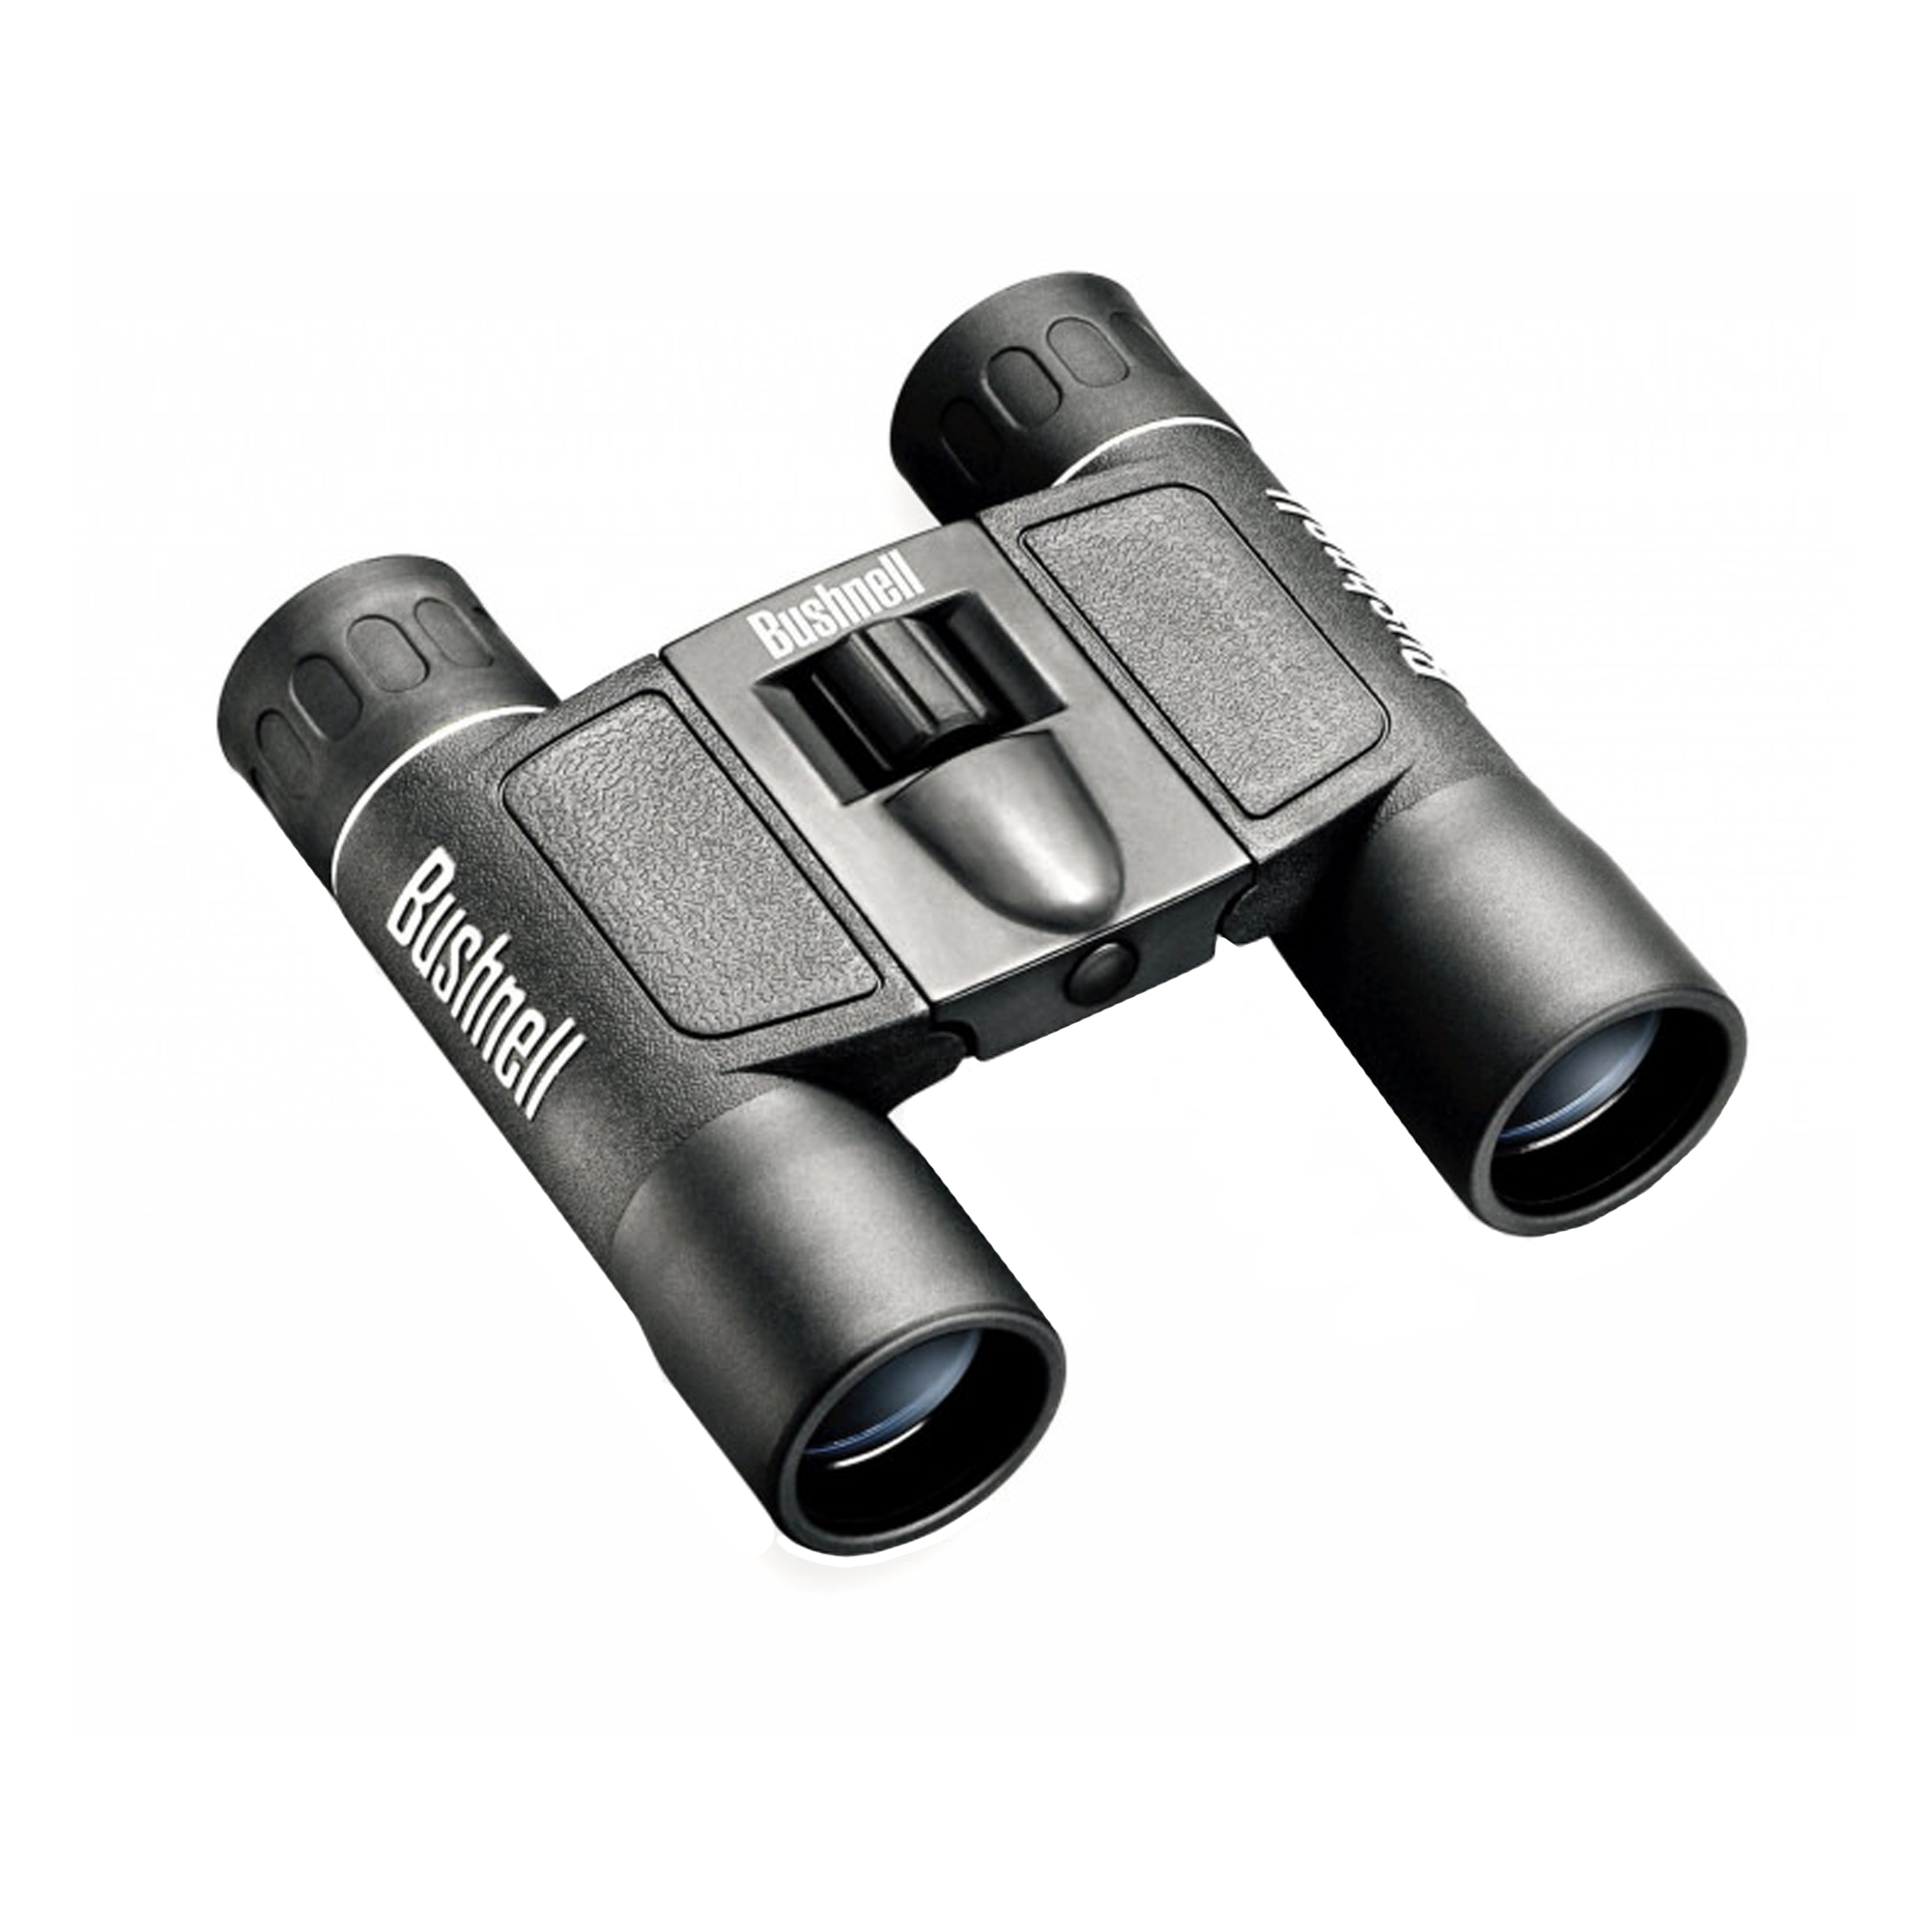 Bushnell, Powerview Binocular, 12X25, Compact, Roof Prism, Black, Rubber by Bushnell